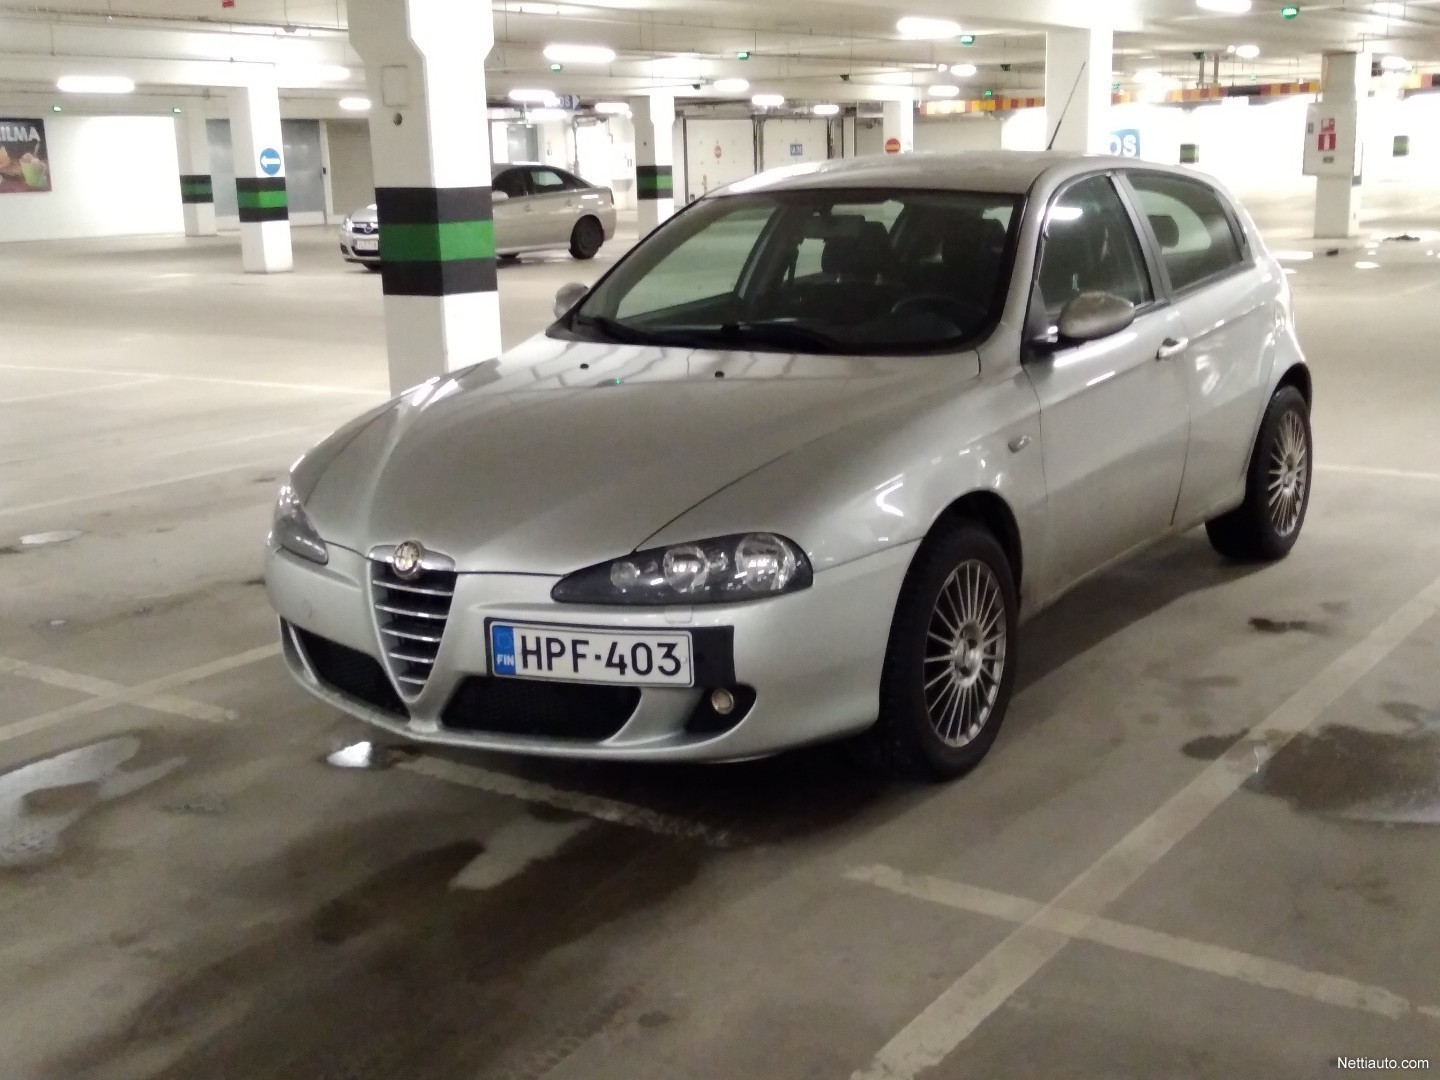 Enlarge image. Alfa Romeo 147